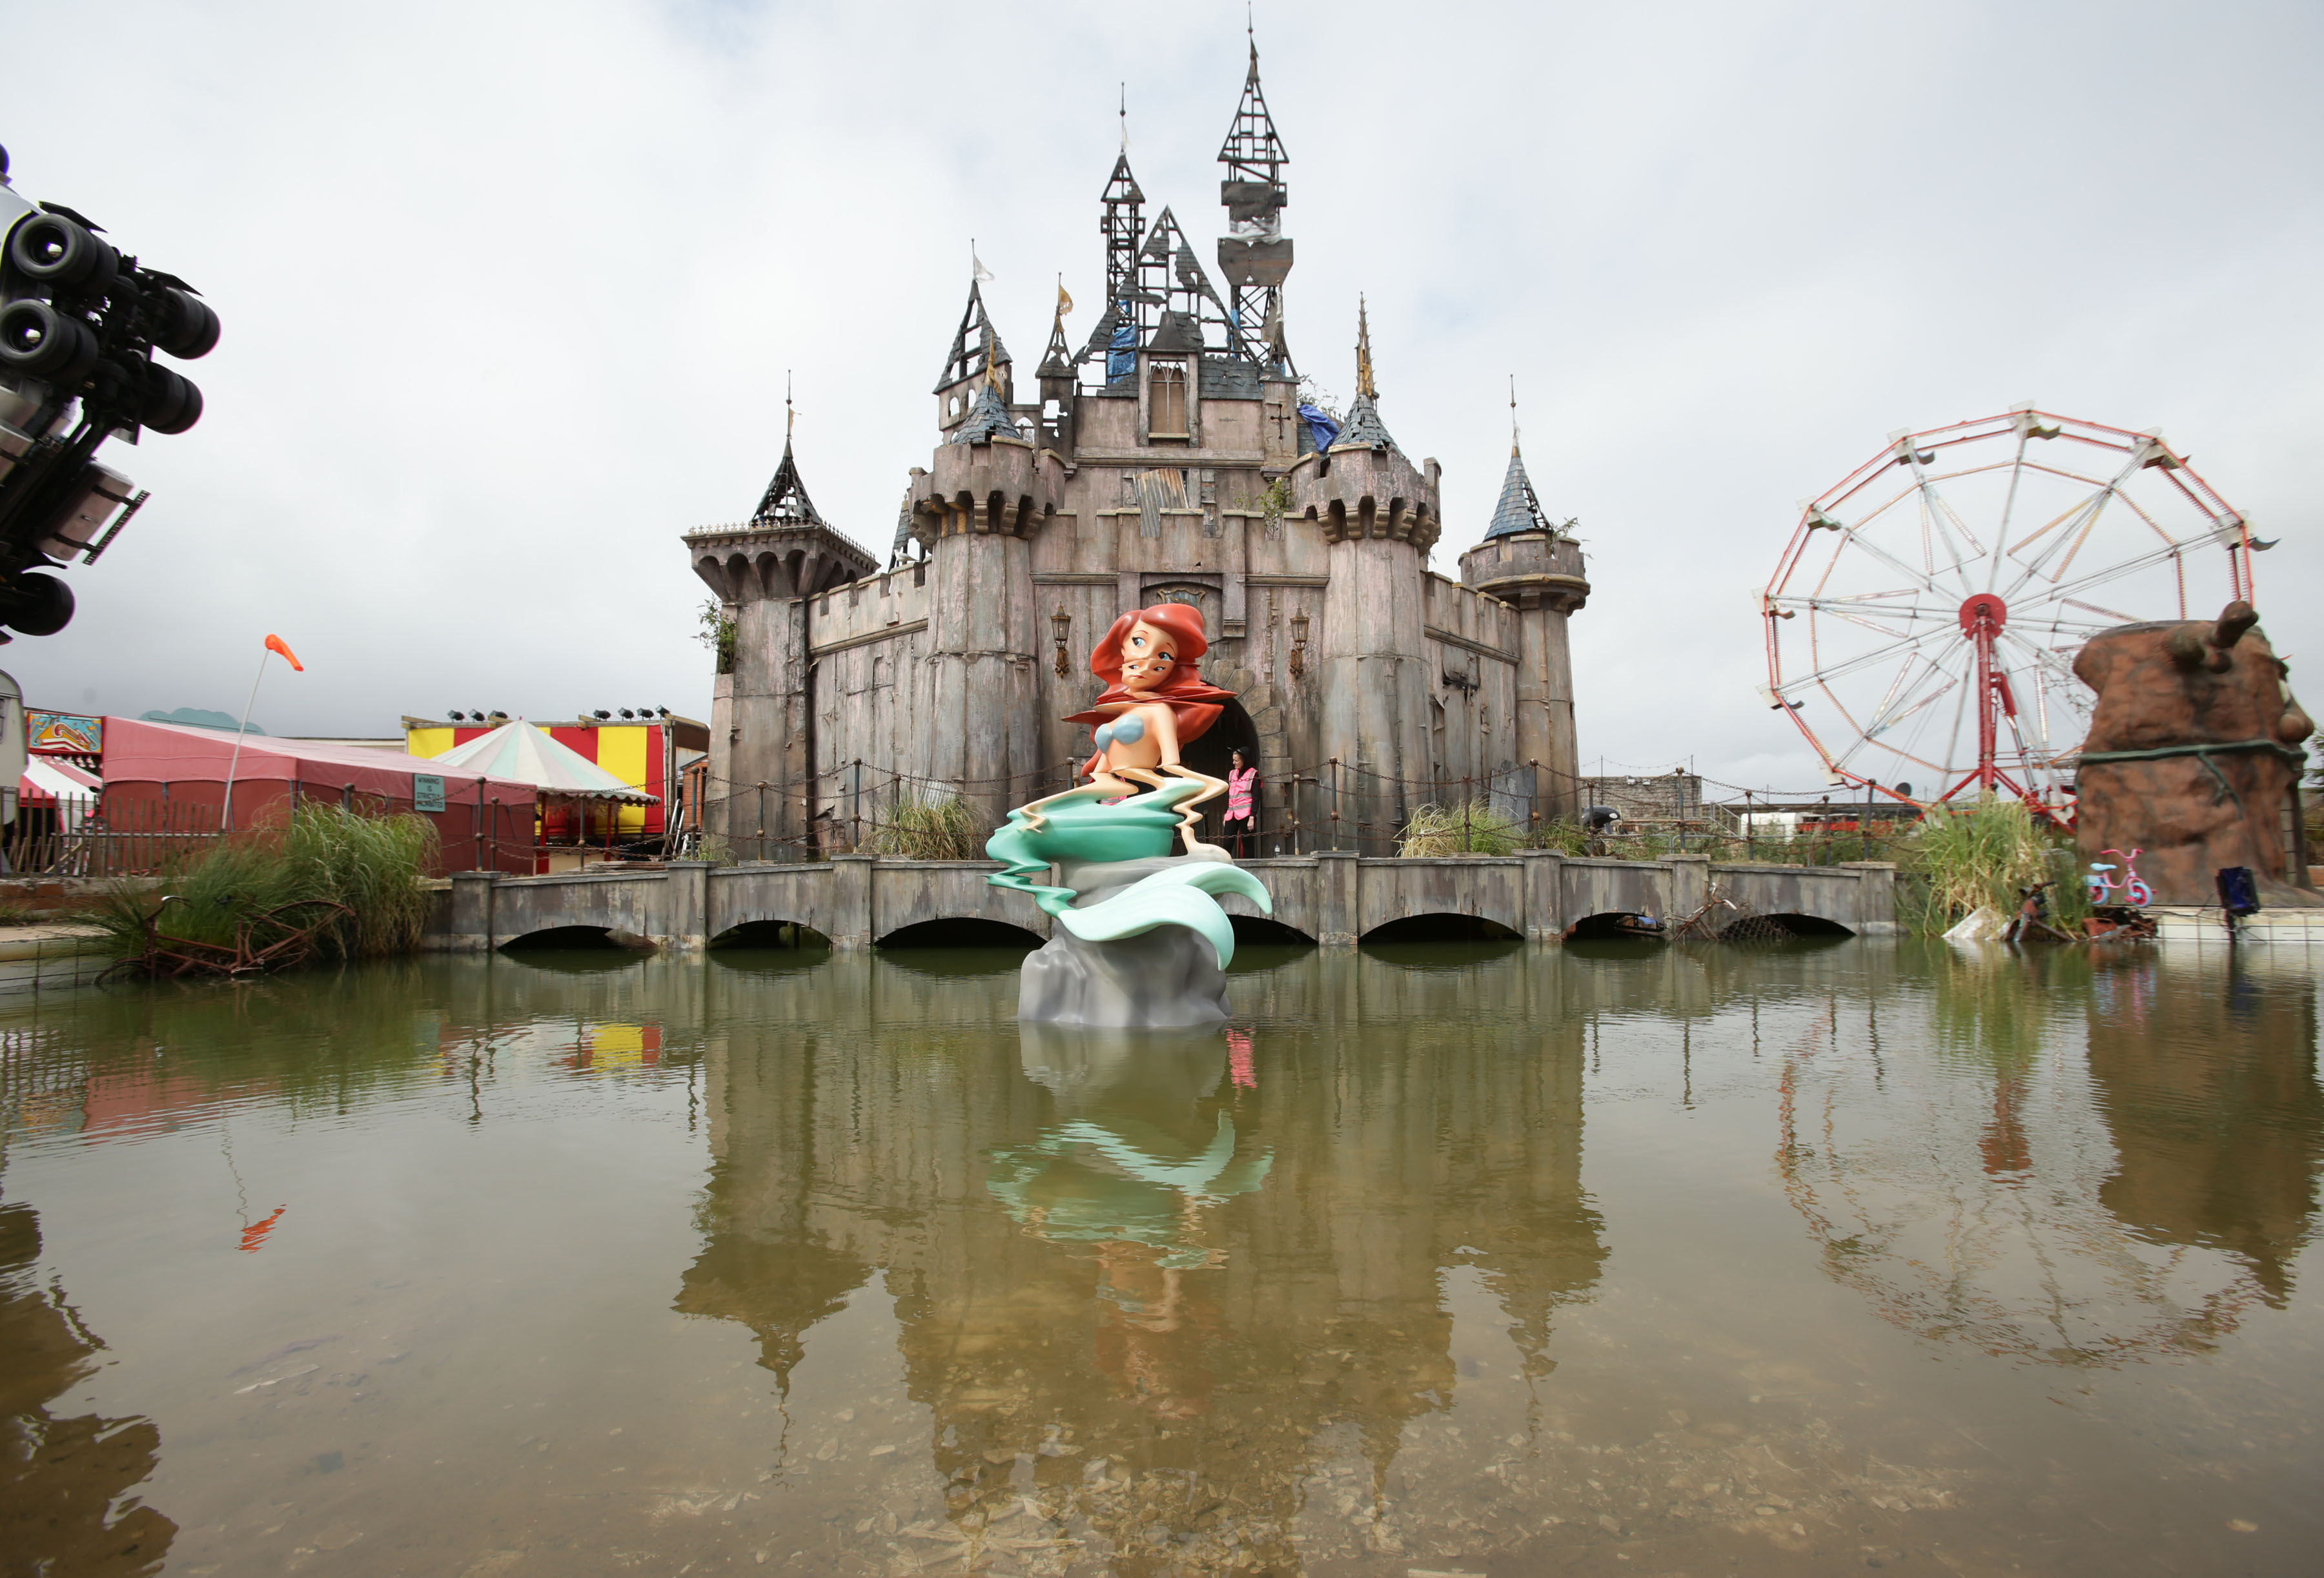 A mermaid piece by Banksy, with a castle by Banksy and Block 9 in the background, during the press preview for the artist's biggest show to date on Aug. 20, 2015, entitled Dismaland, at Tropicana in Western-super-Mare, Somerset.